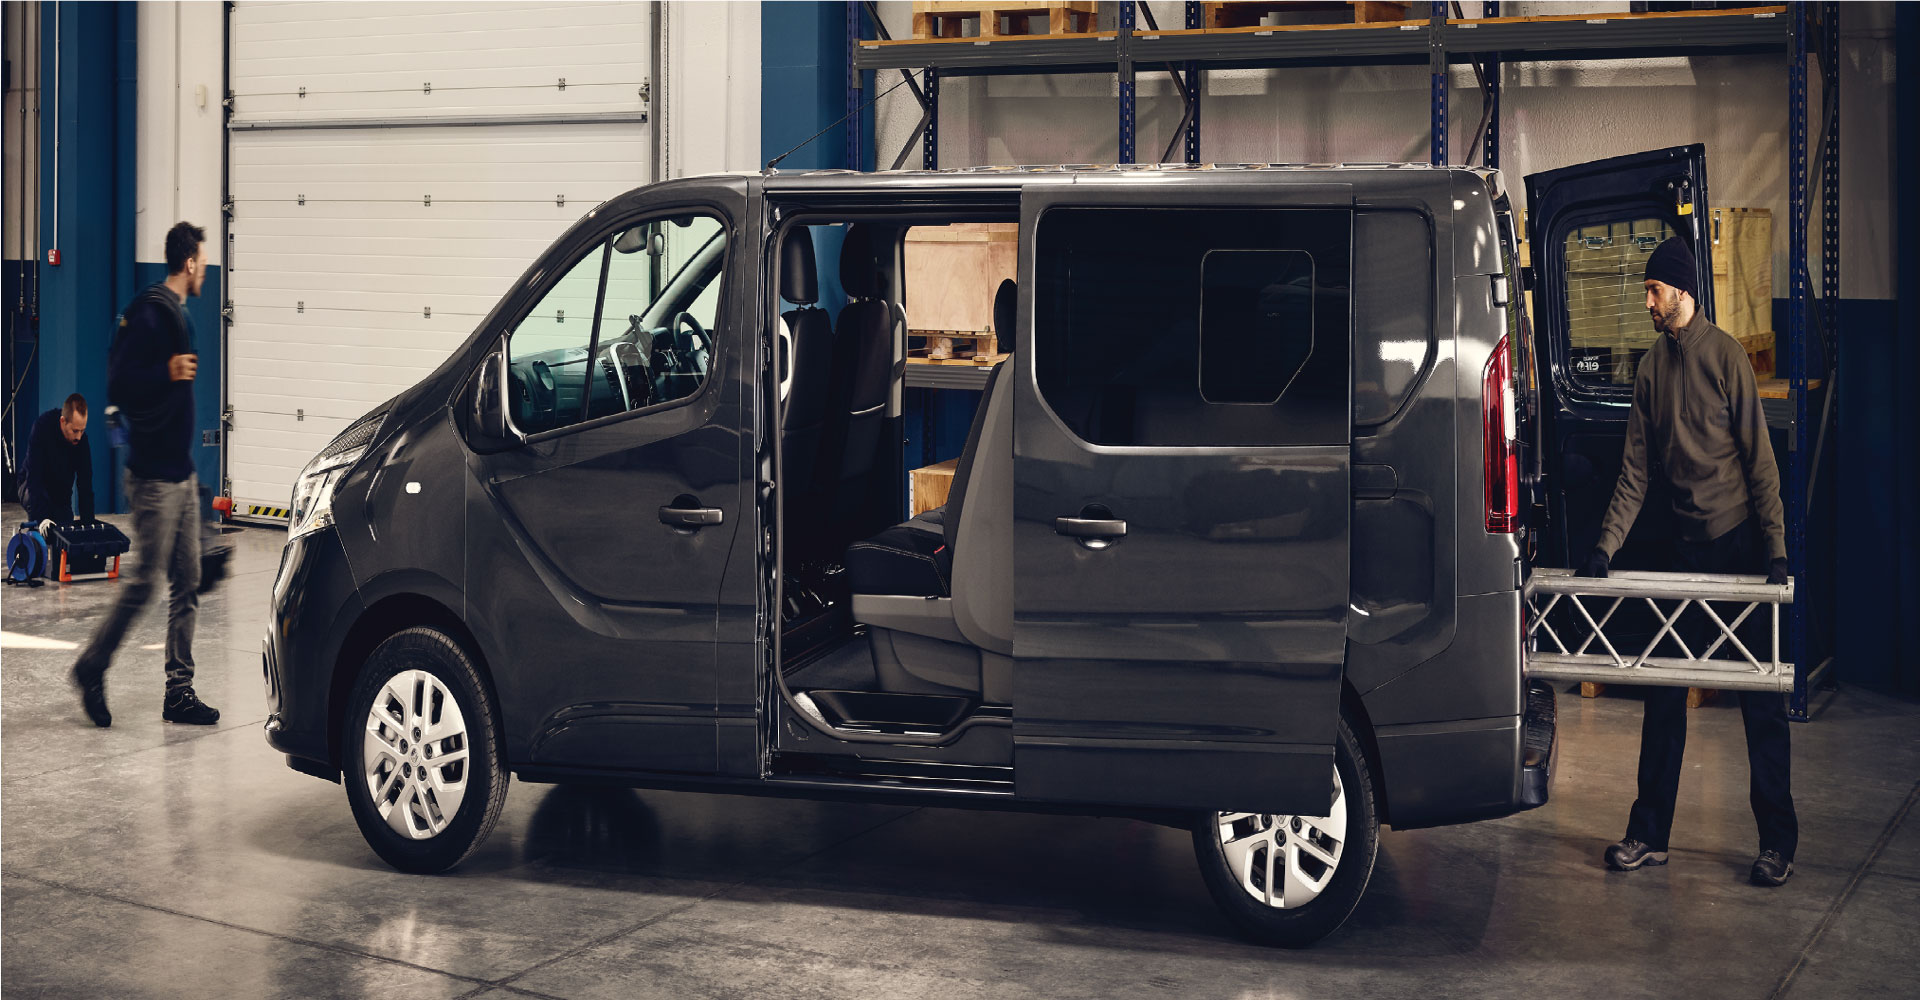 RENAULT | MASTER + TRAFIC VANS IN STOCK AND READY TO WORK